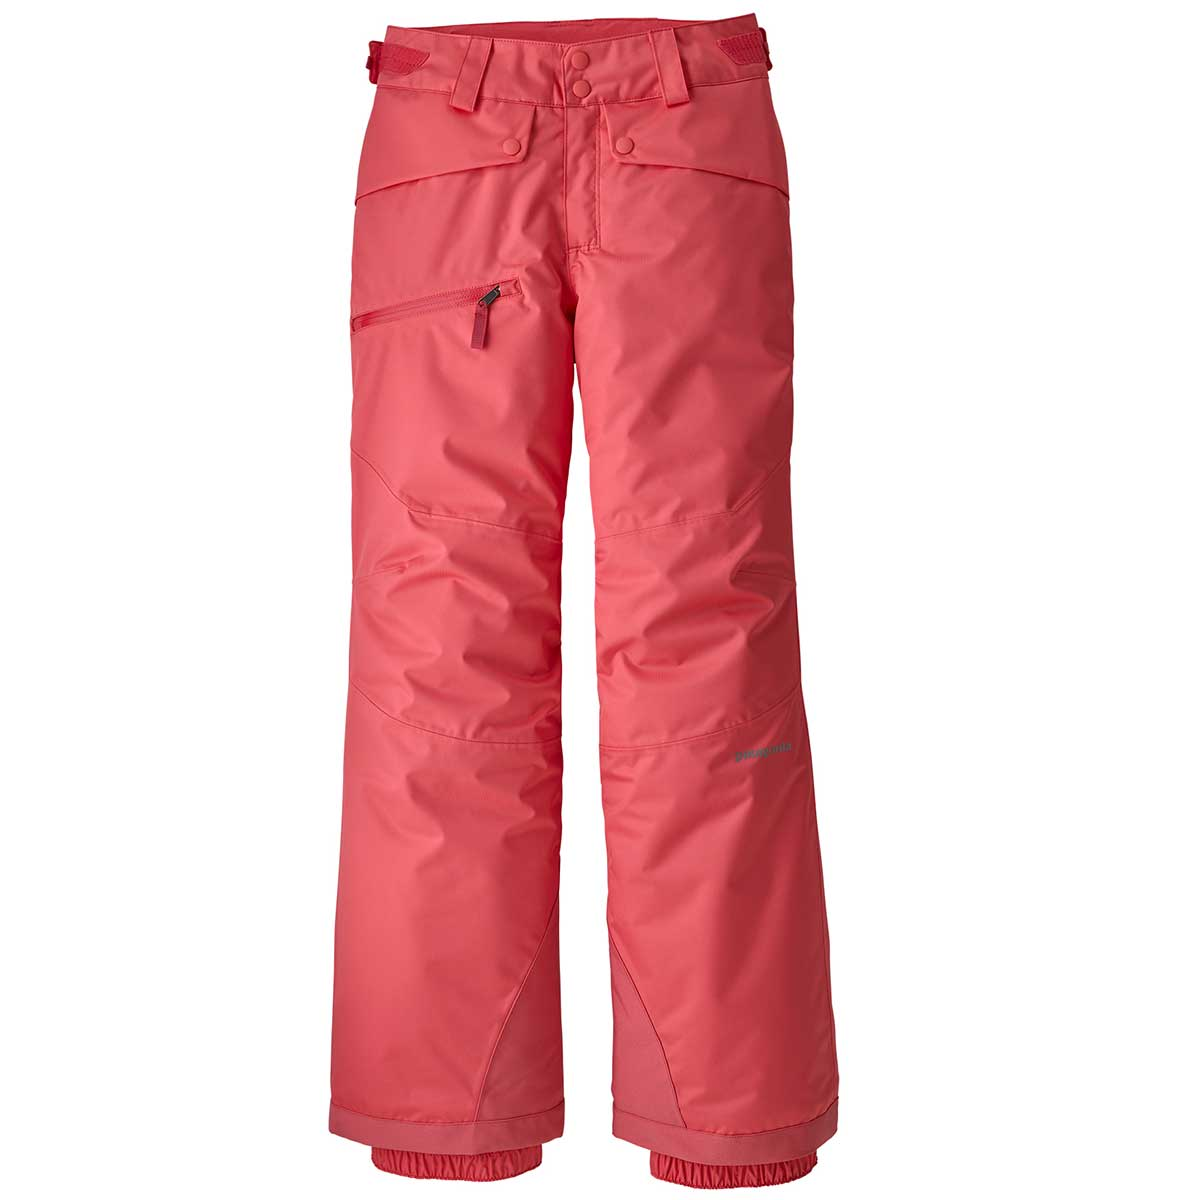 Patagonia girl's Snowbelle Pant in Range Pink front view